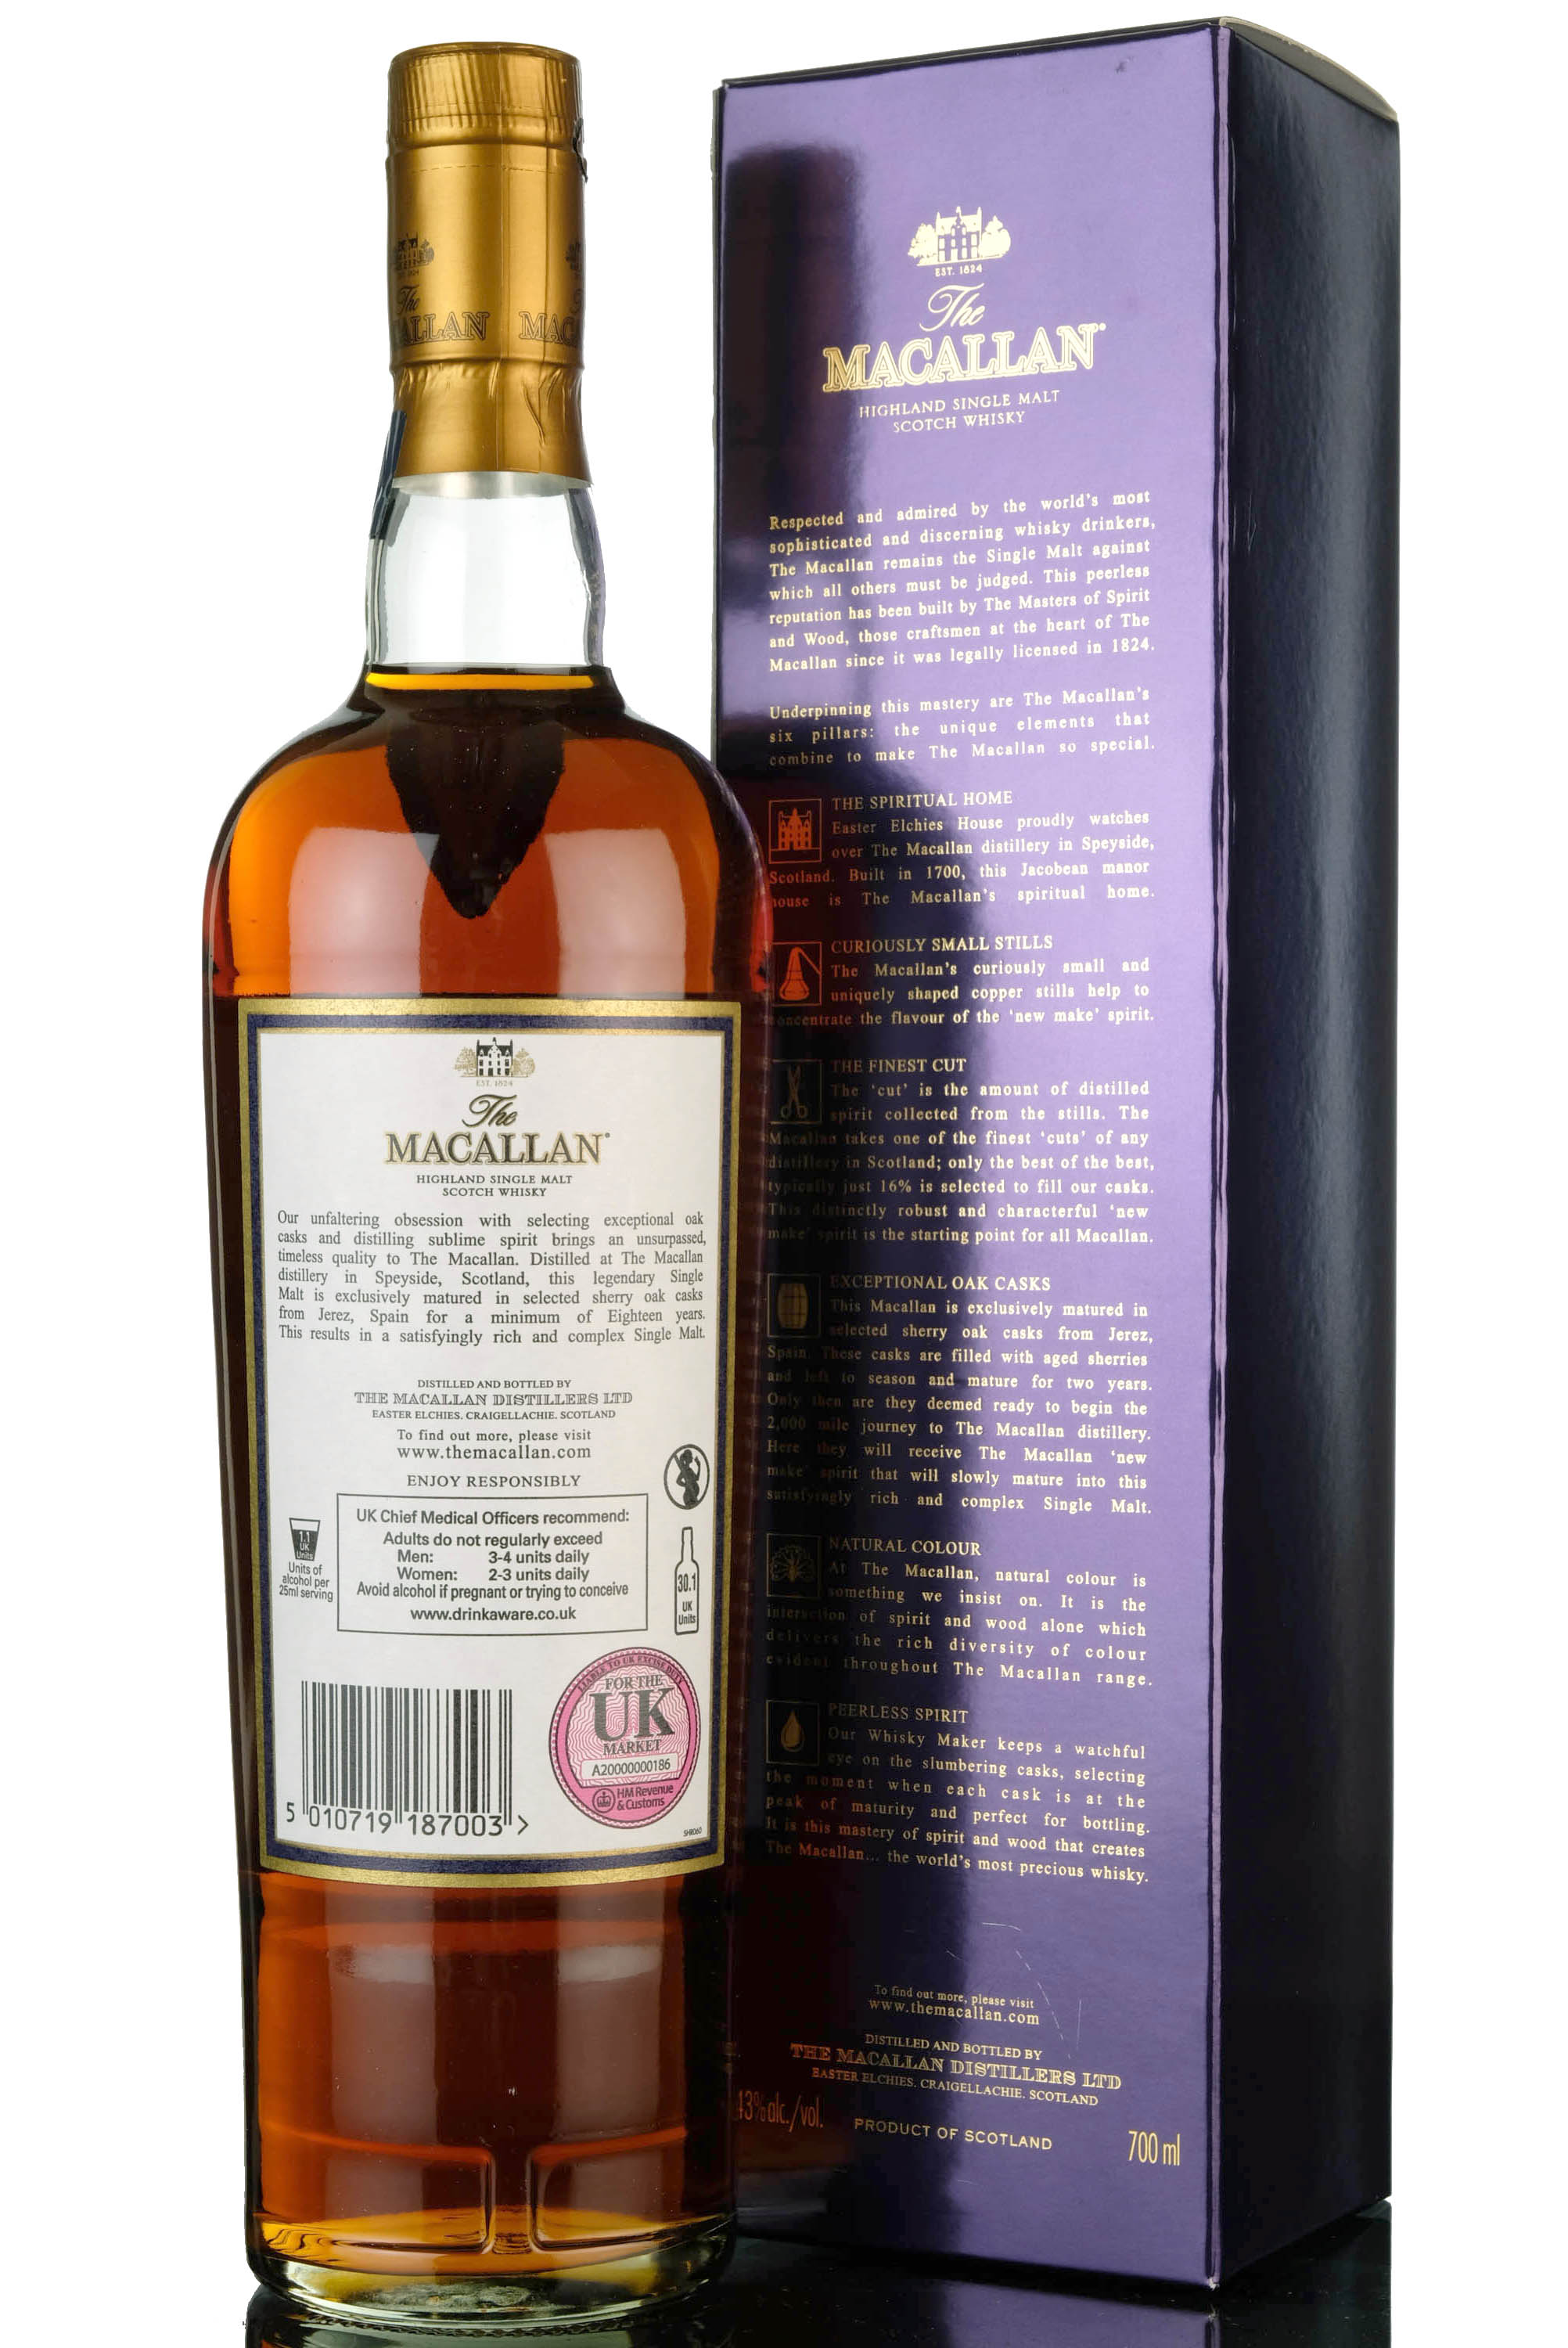 macallan 18 year old - 2017 release